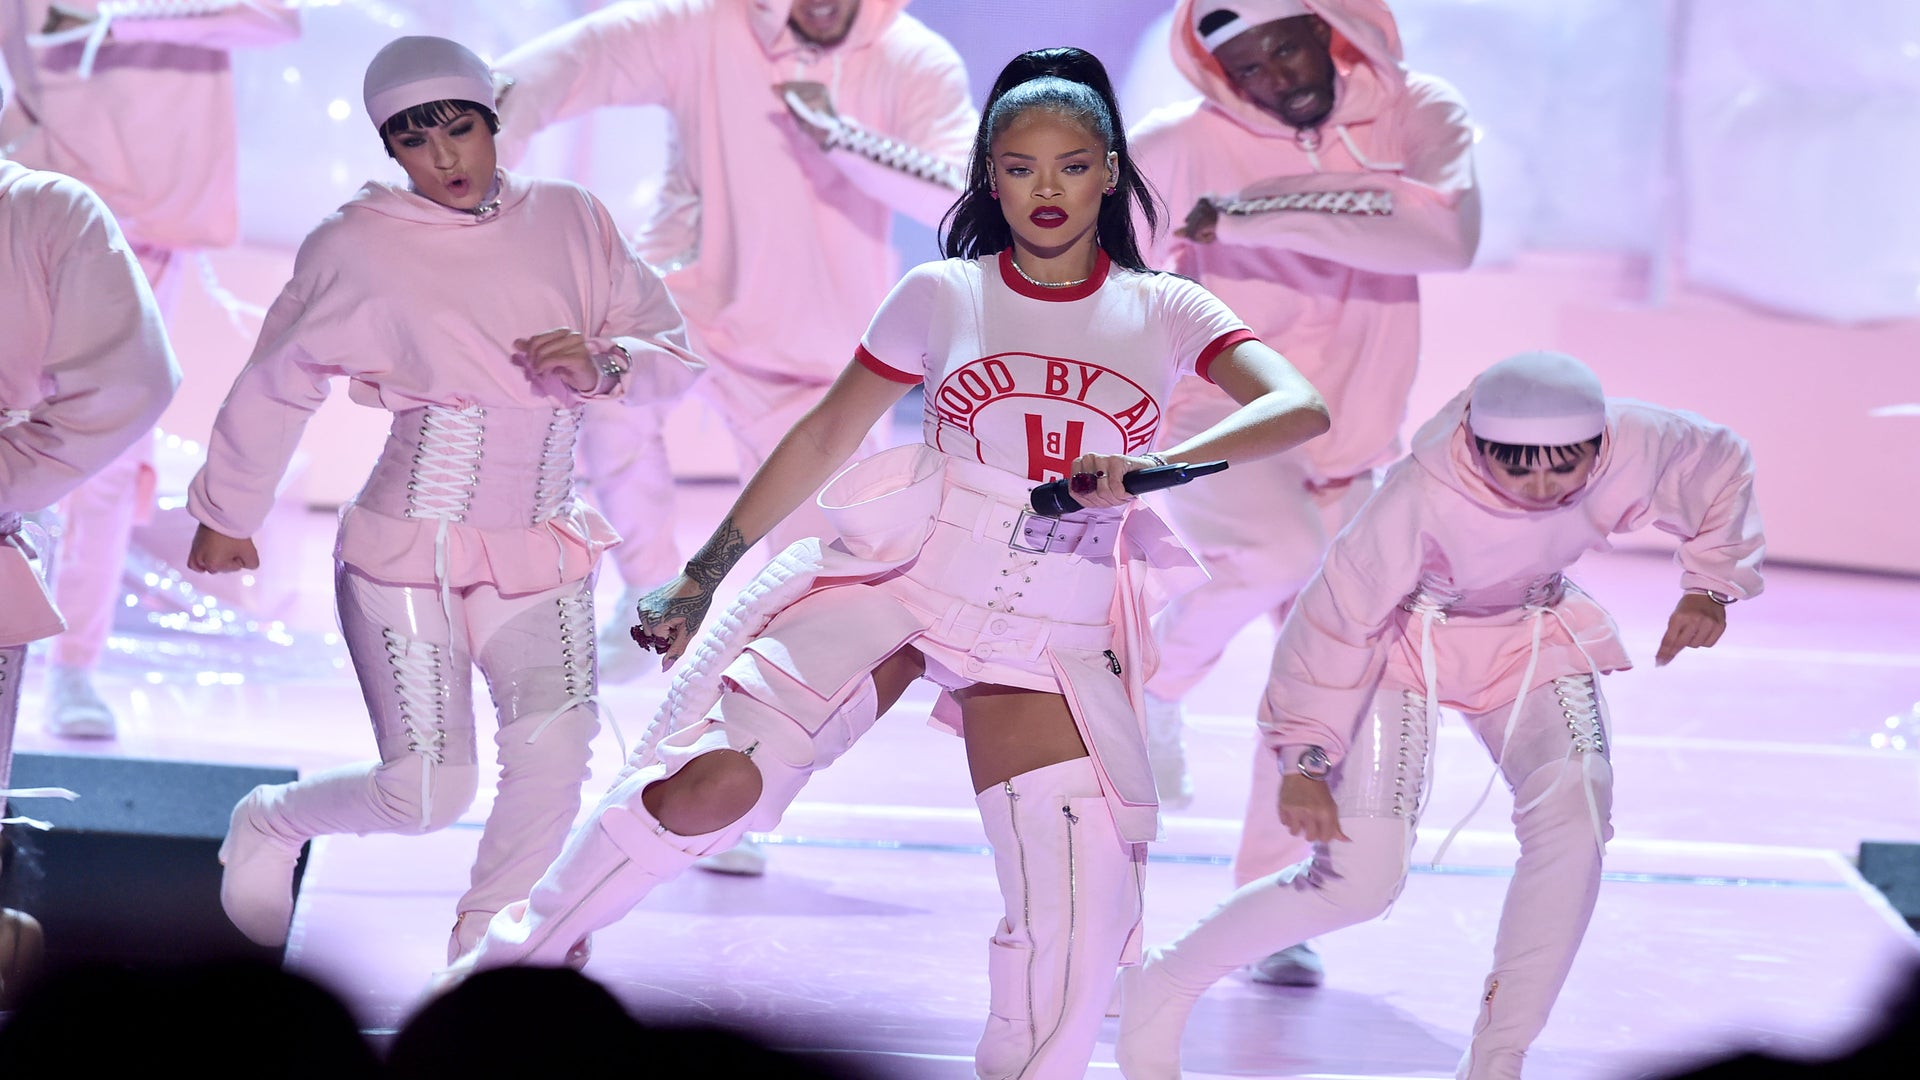 Rihanna's VMA Outift is Next Level Like We Knew it Would Be